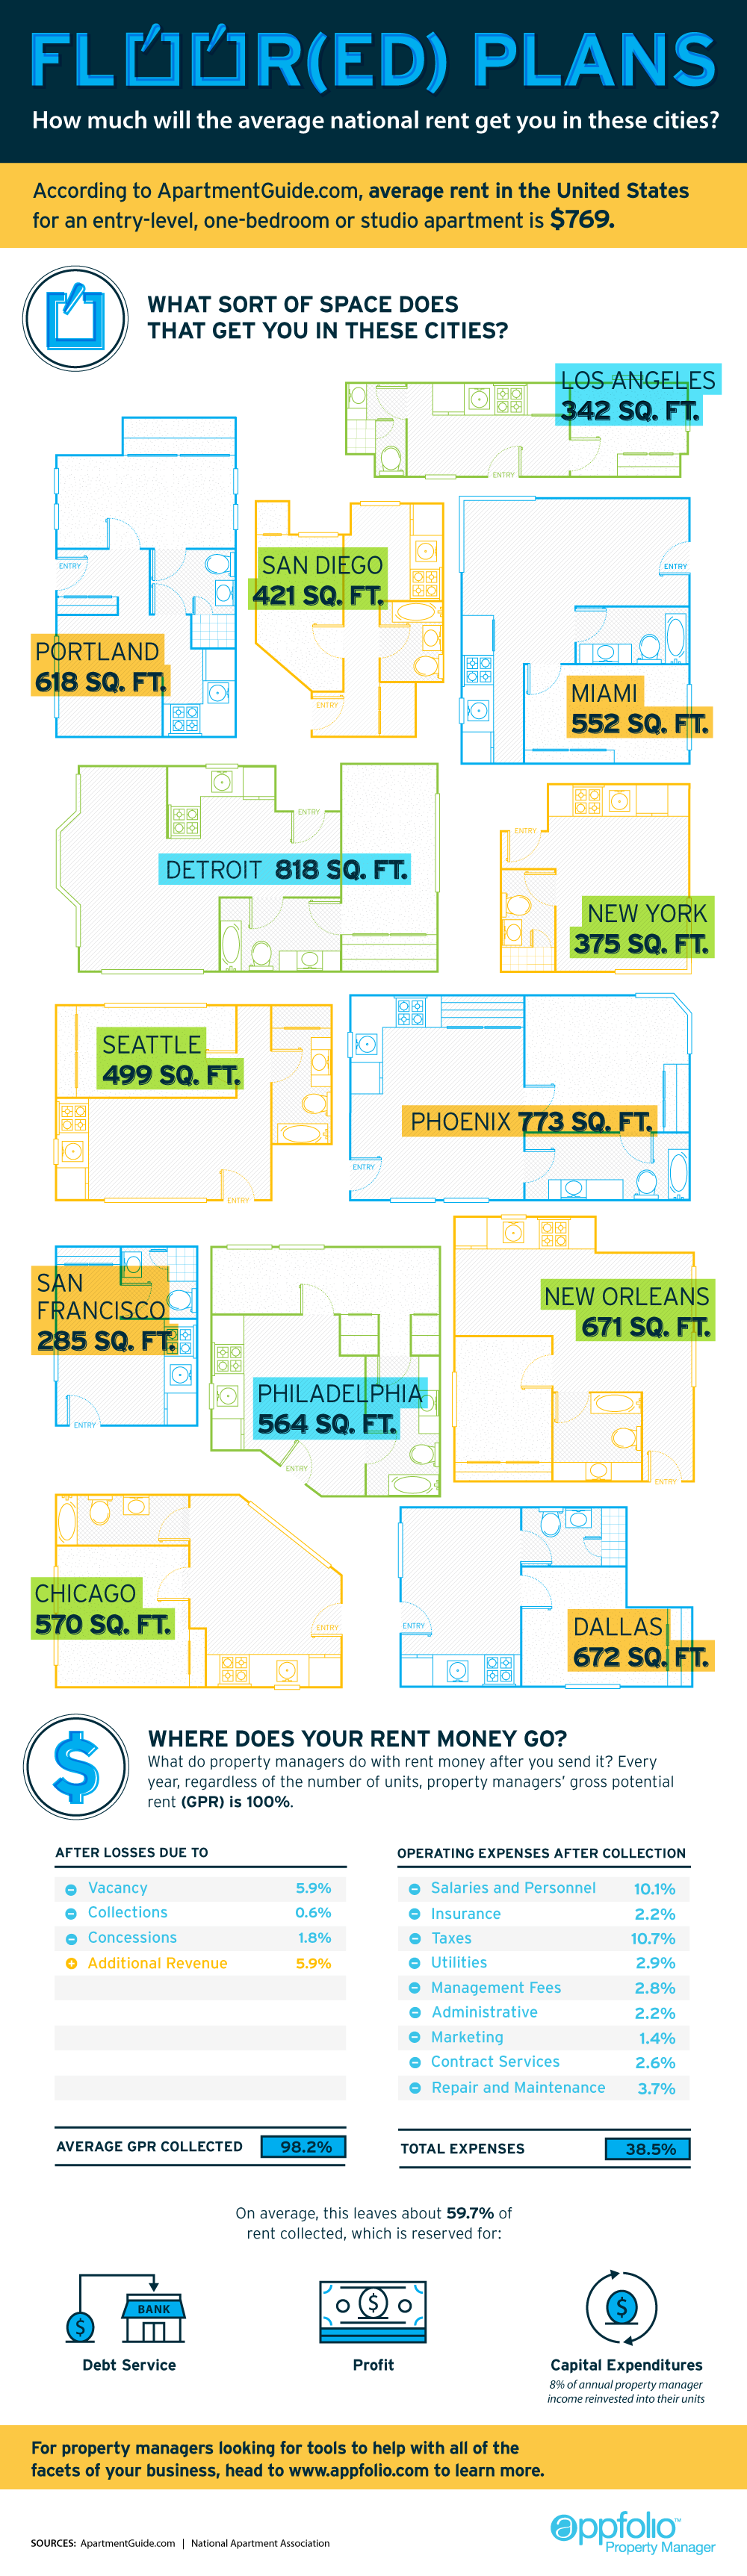 Comparisons: How Philly Stacks Up In National Average Single Bedroom Rent